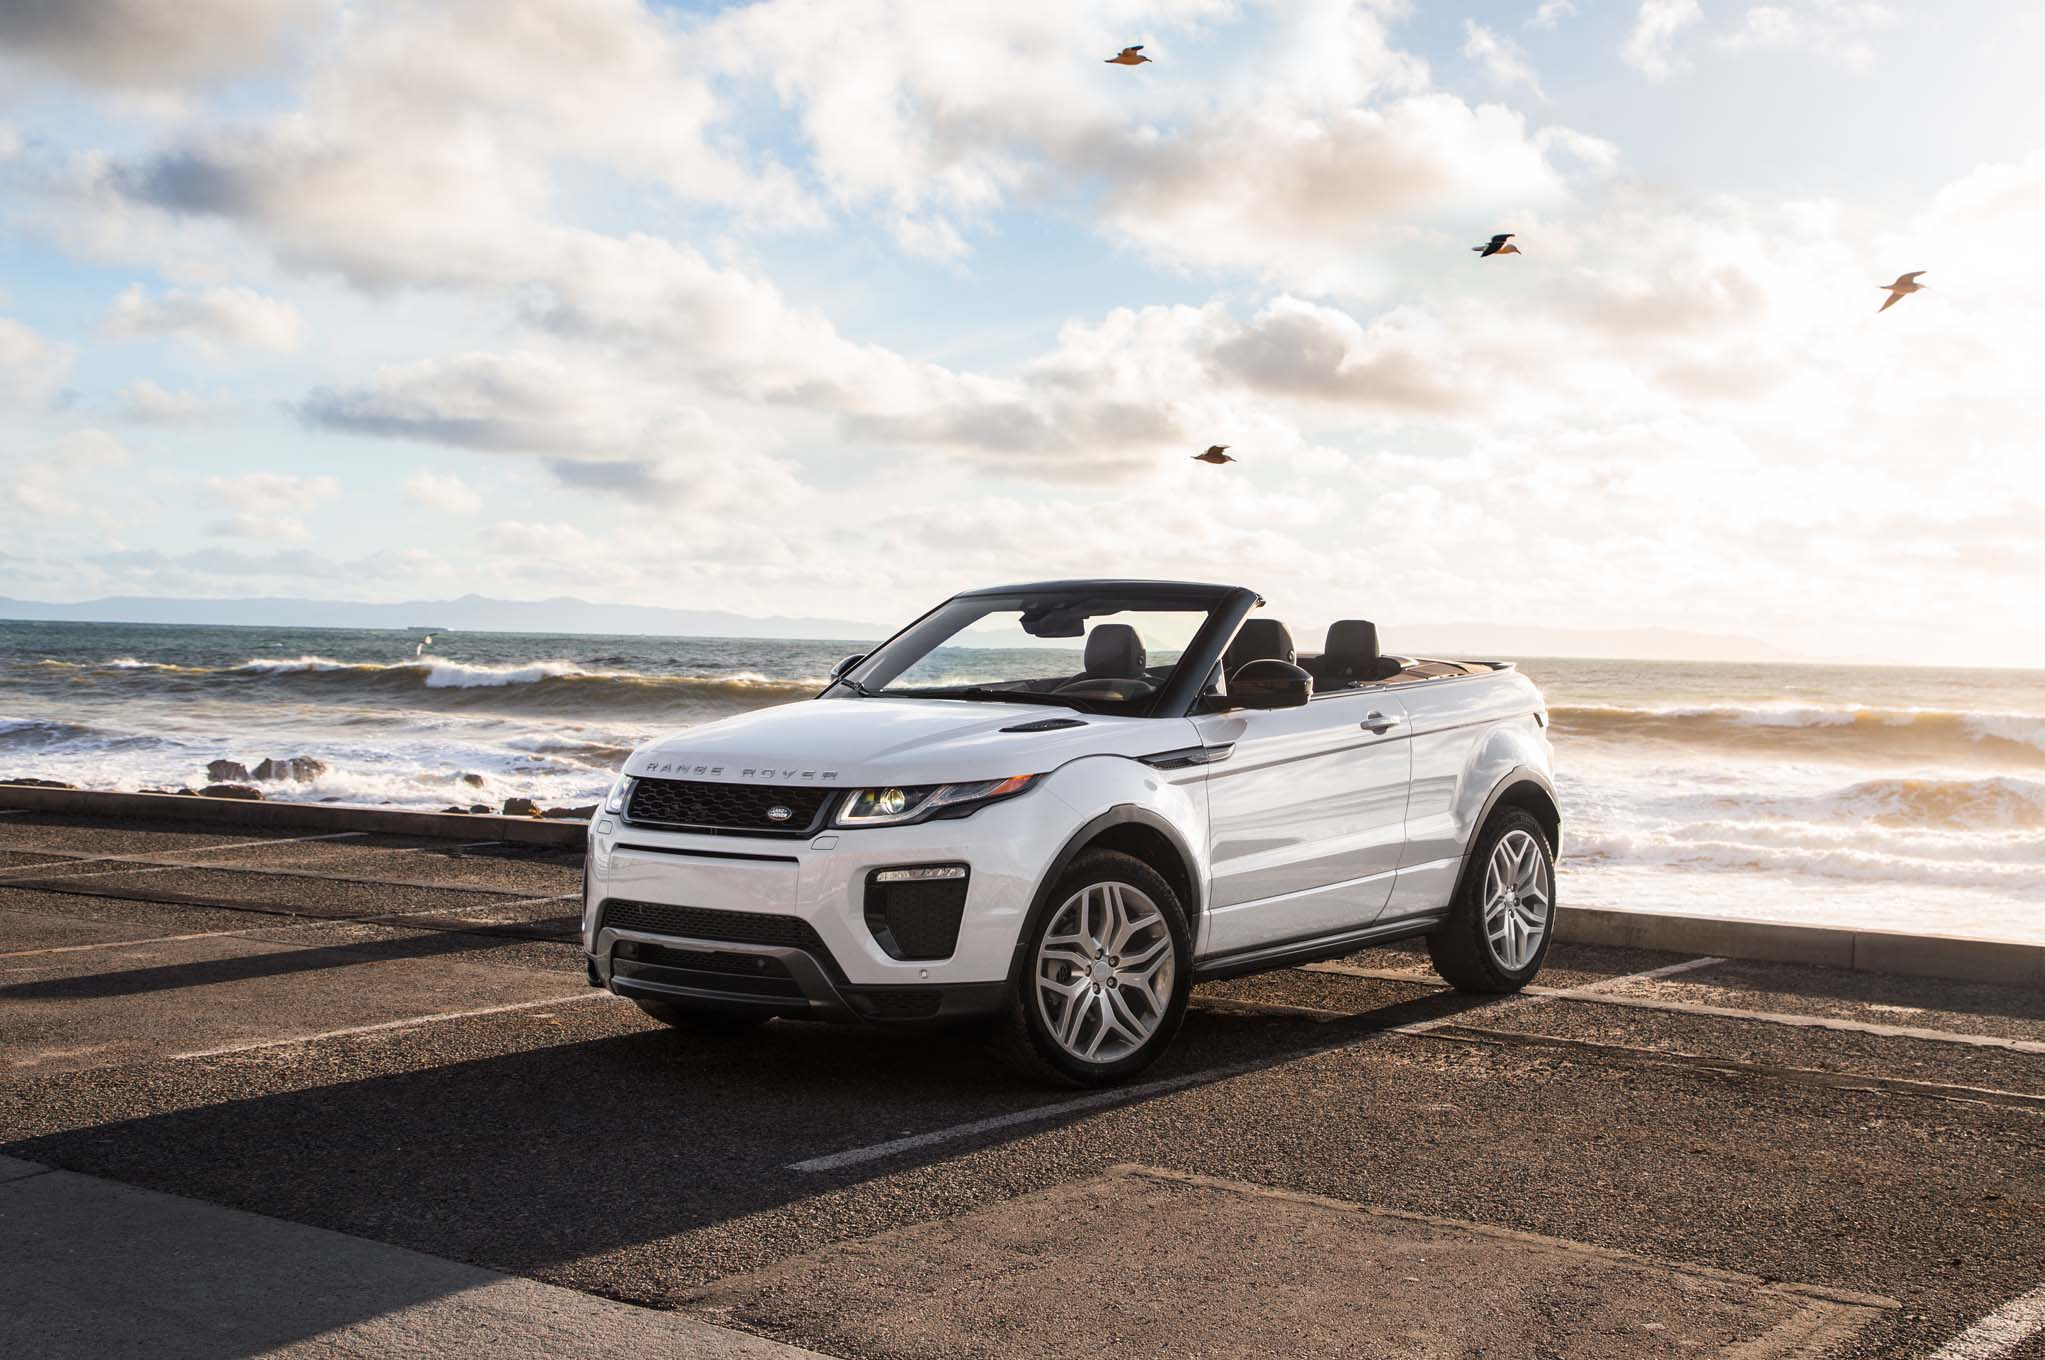 range rover evoque convertible review droptop suv an acquired taste gearopen. Black Bedroom Furniture Sets. Home Design Ideas